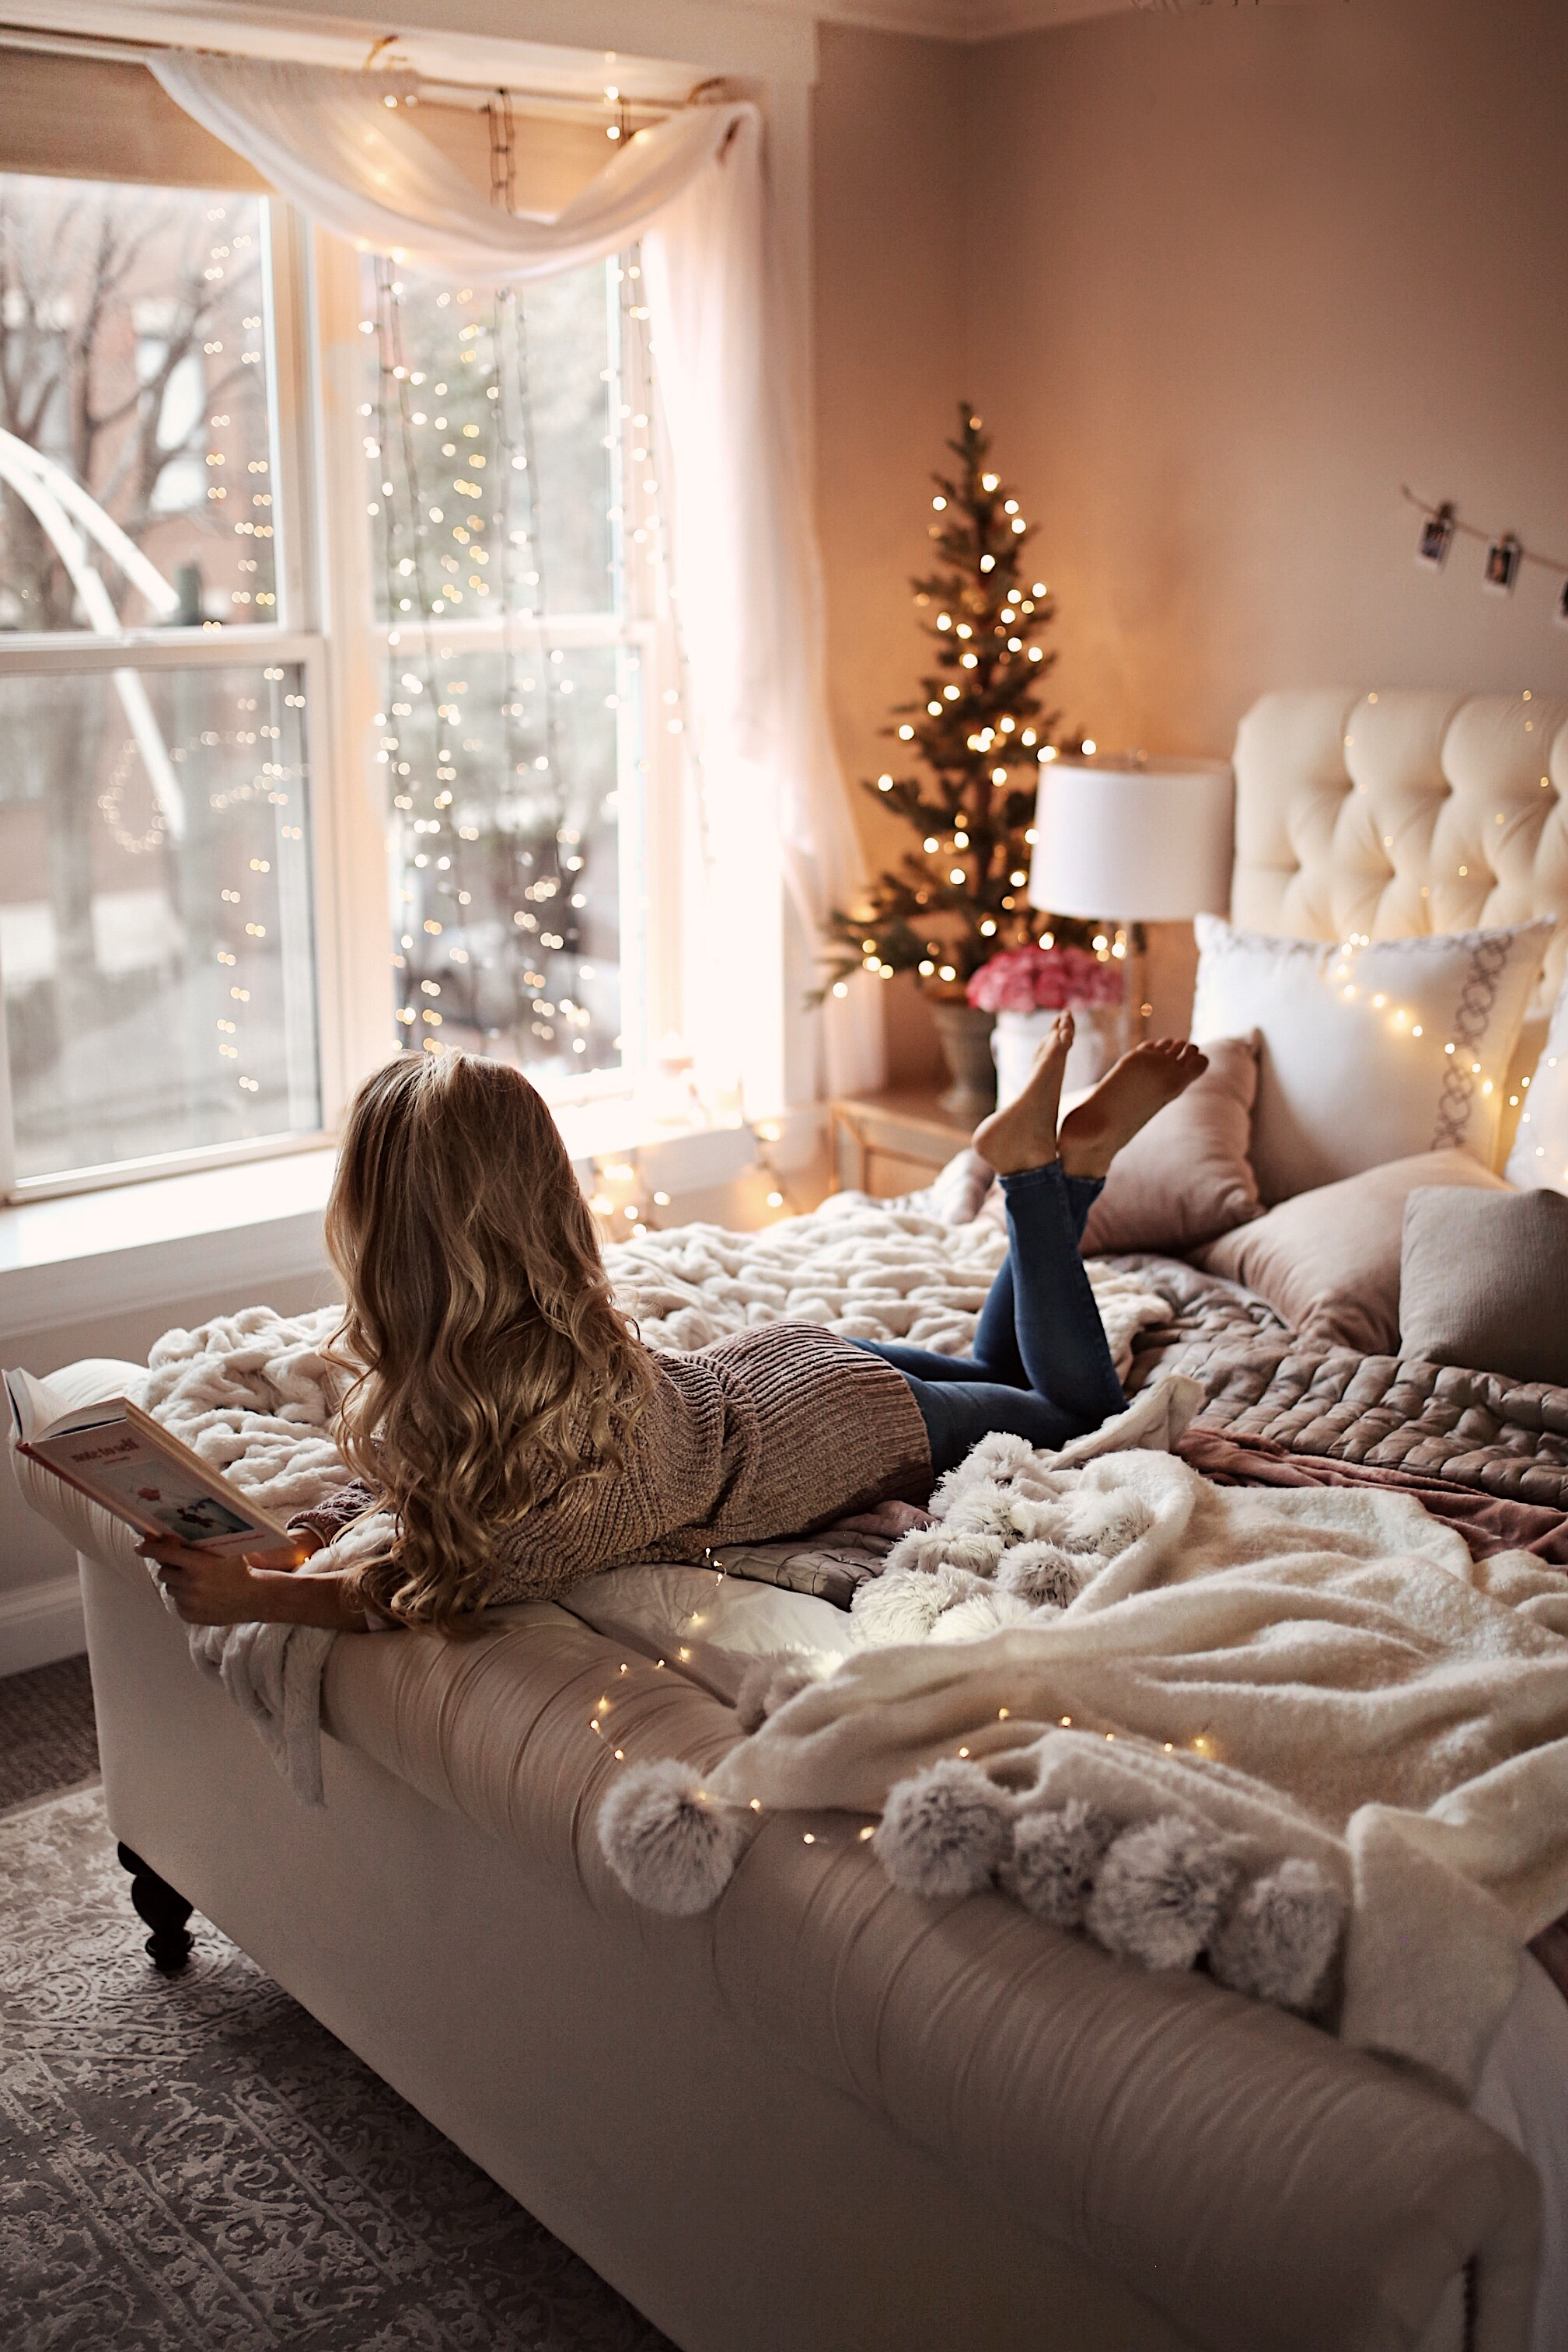 7 Holiday Decor Ideas For Your Bedroom